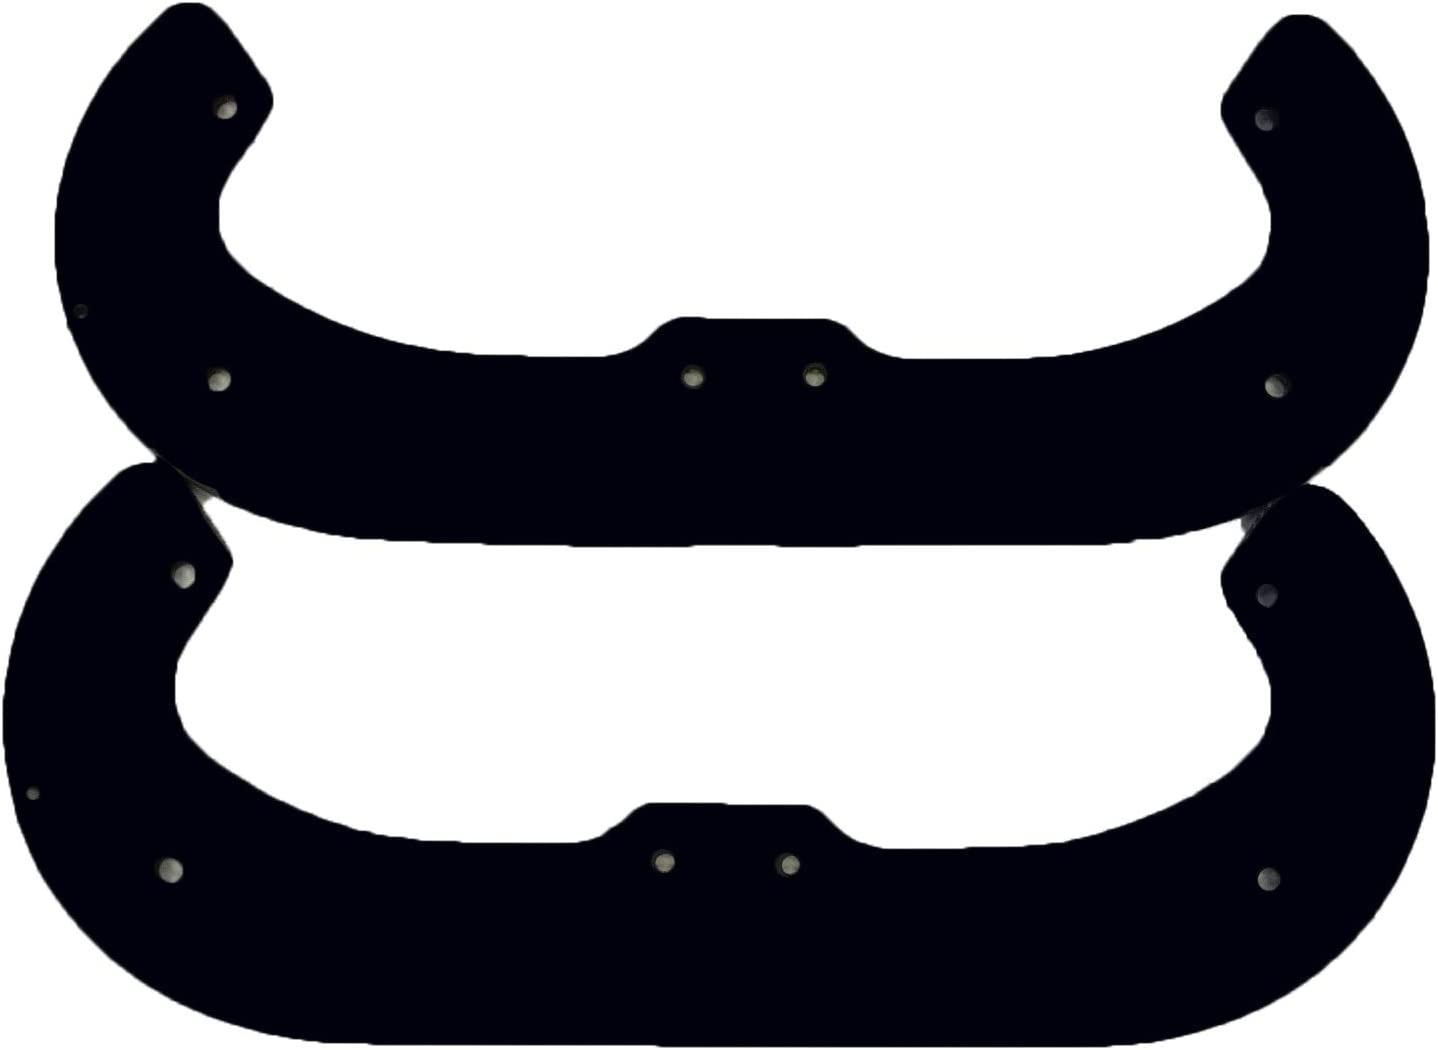 MOWERMAN PARTS Credence Snow Blower Replacement 2 pc Paddle for Toro New Orleans Mall Set